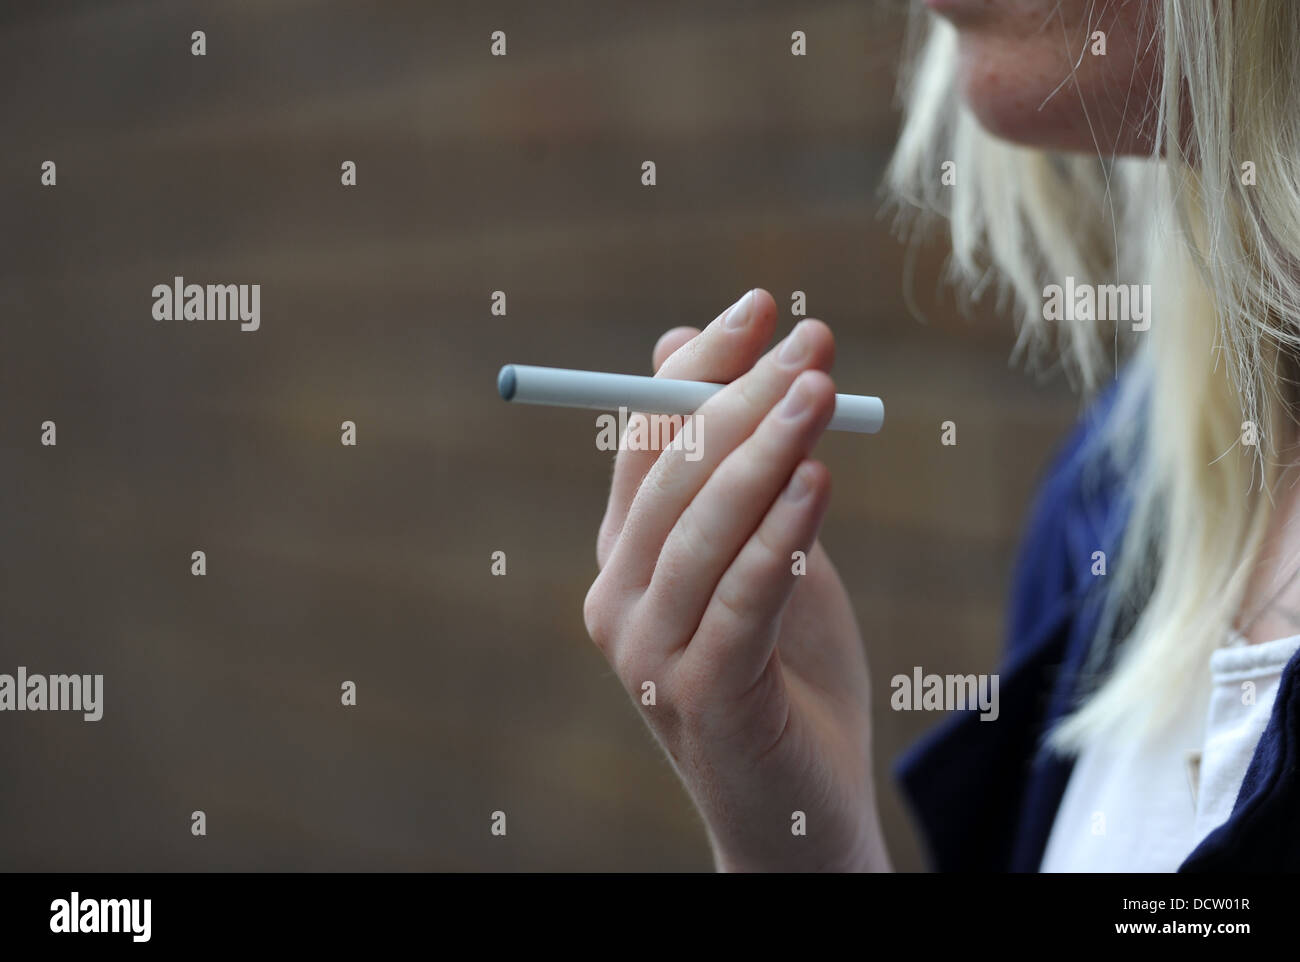 A young girl holding an electronic cigarette. - Stock Image